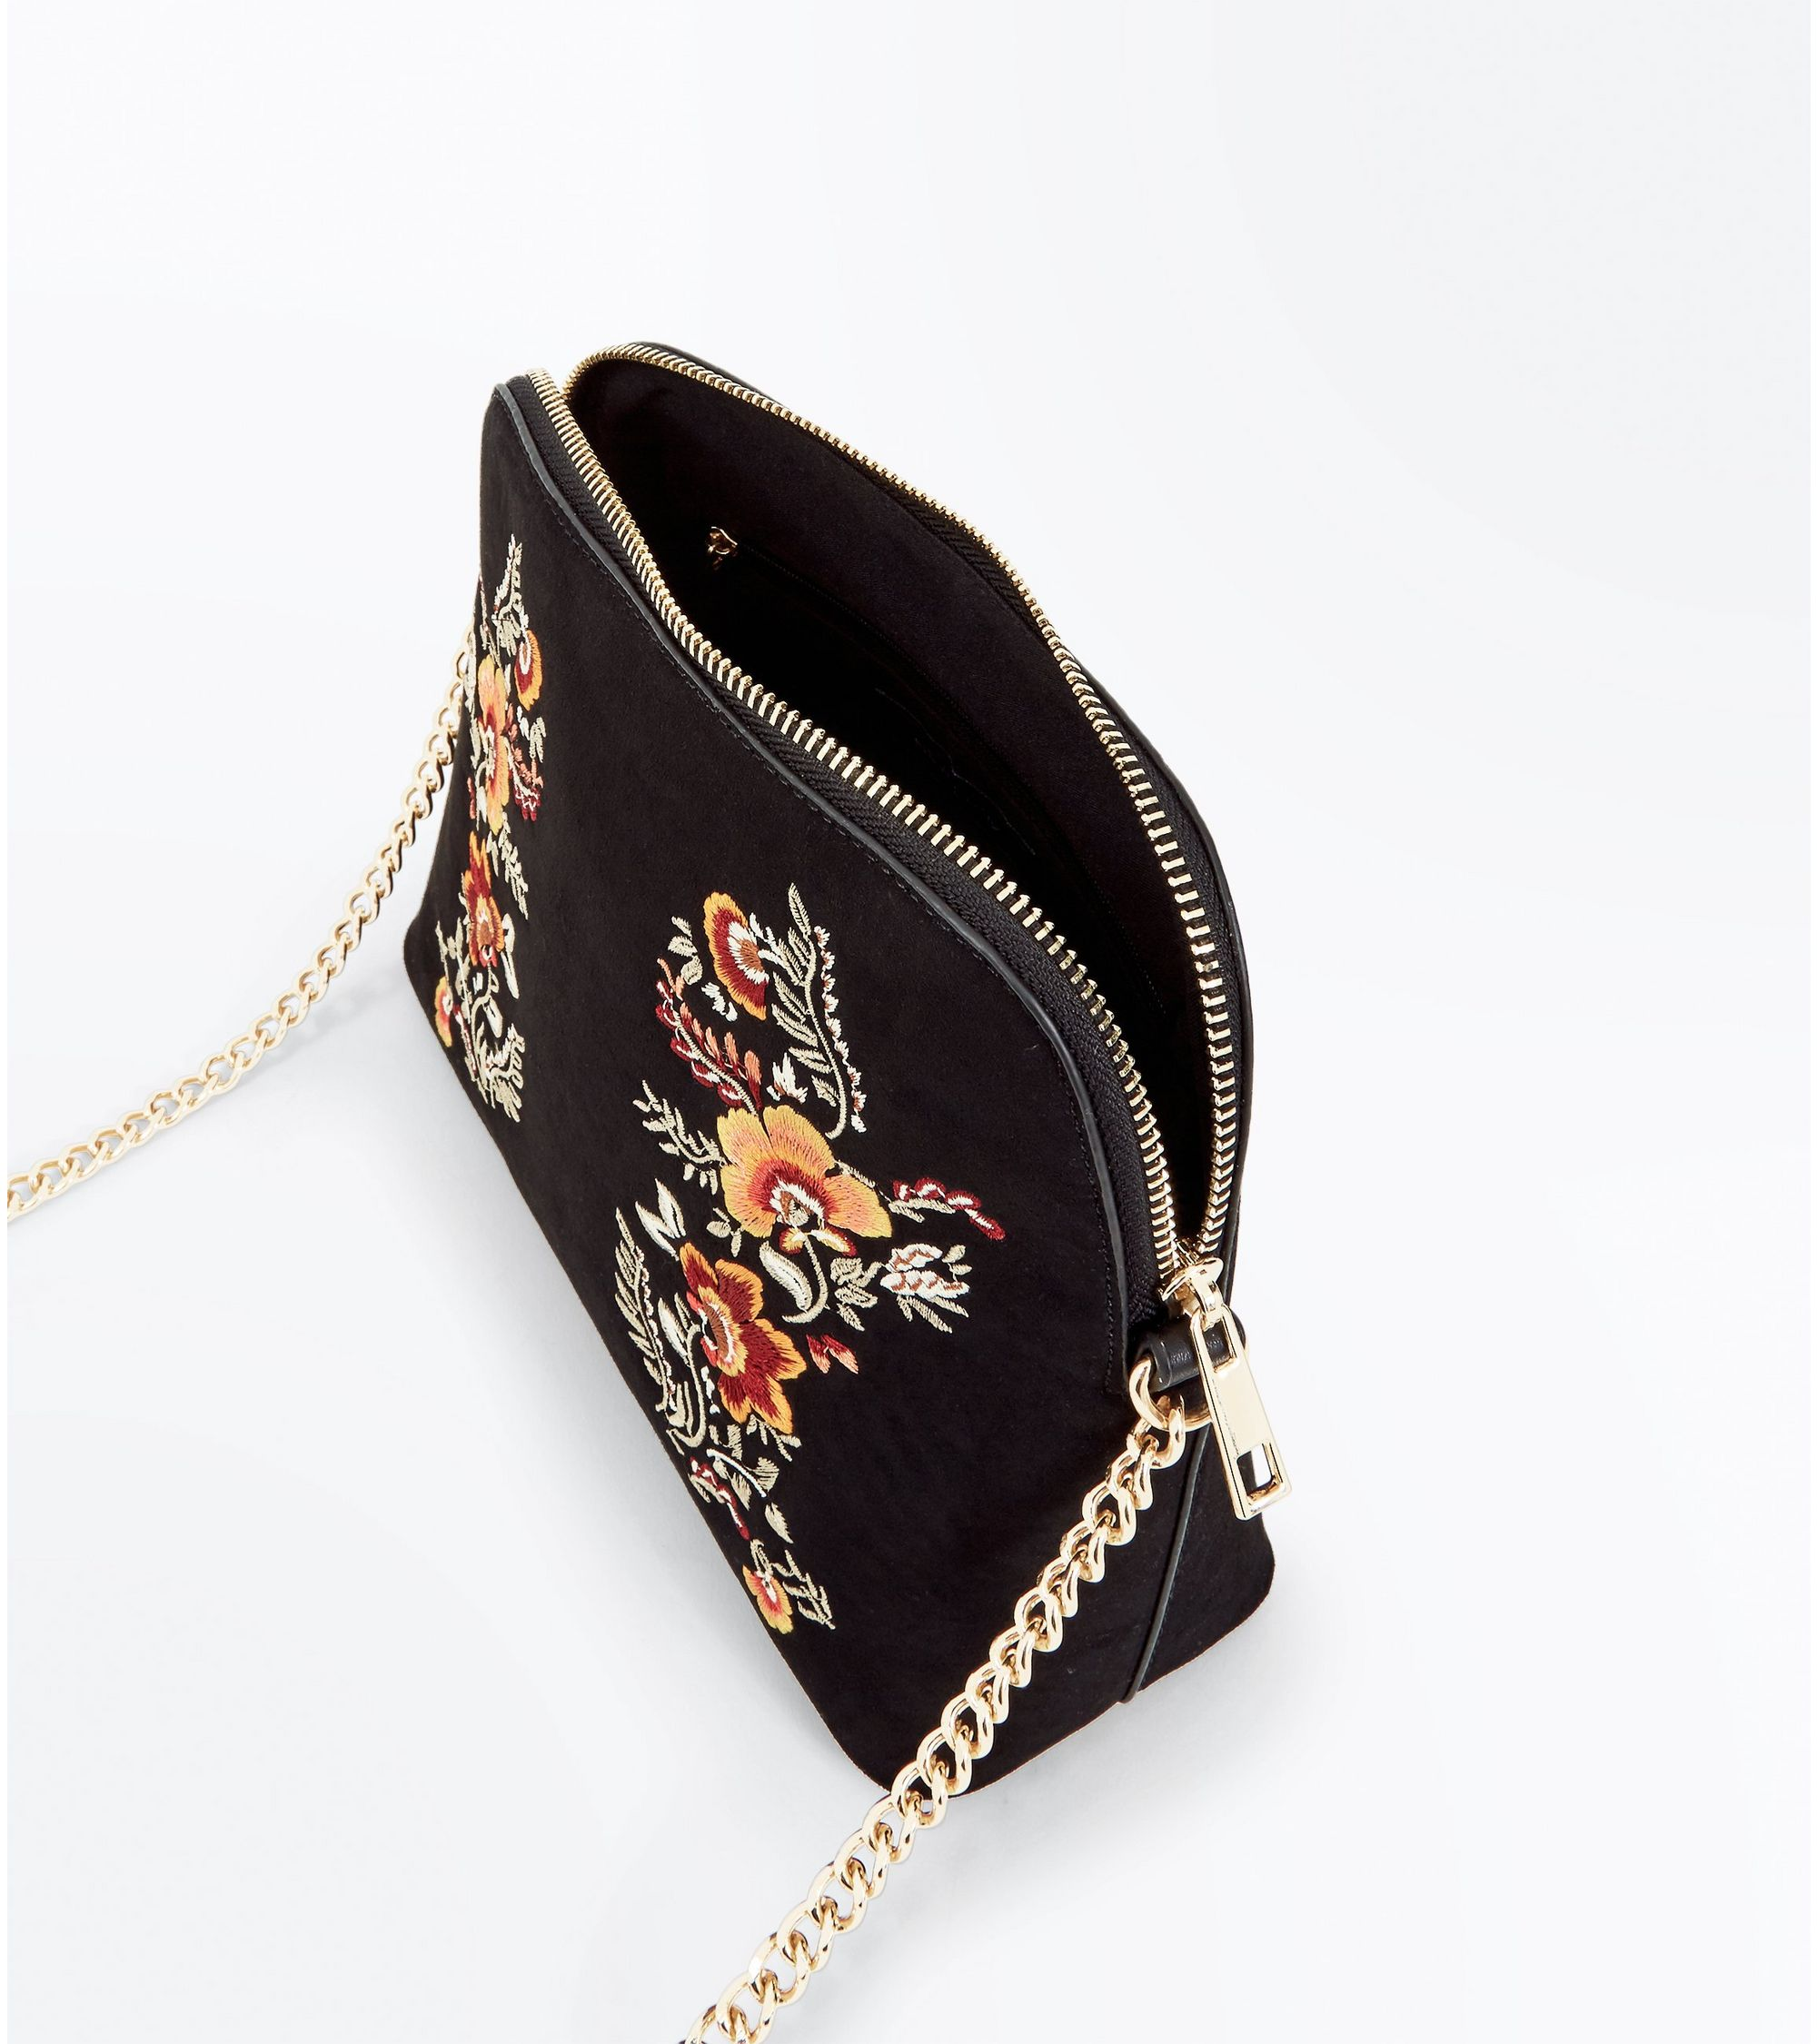 8bac8a4edfed New Look Black Embroidered Cross Body Bag at £15.99